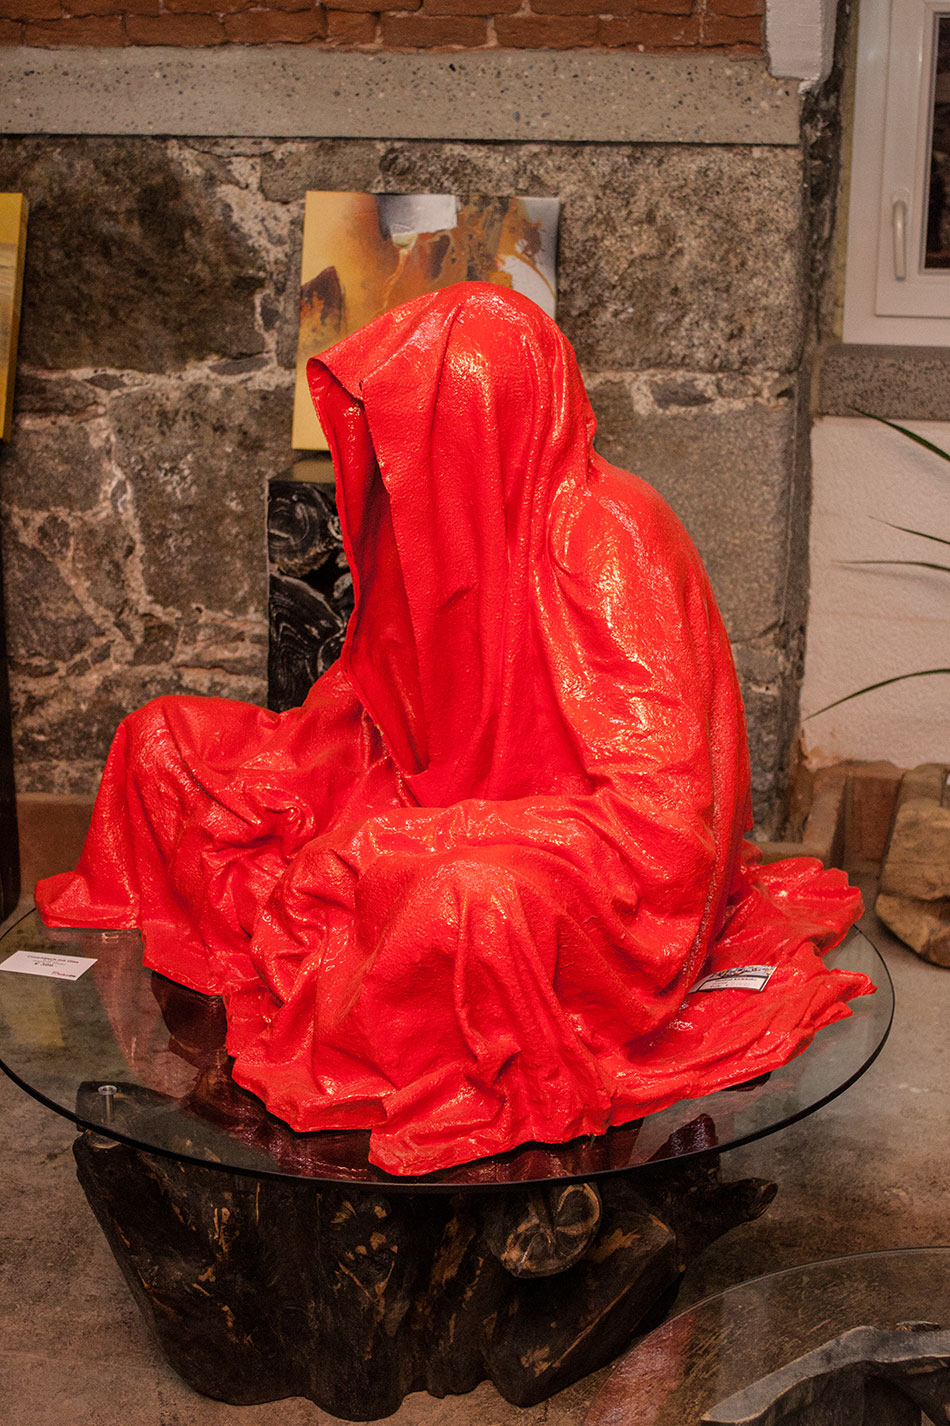 mobile-galerie-gall-toko06-linz-25er-turm-guardians-of-time-manfred-kielnhofer-contemporary-fine-art-design-sculpture-2653